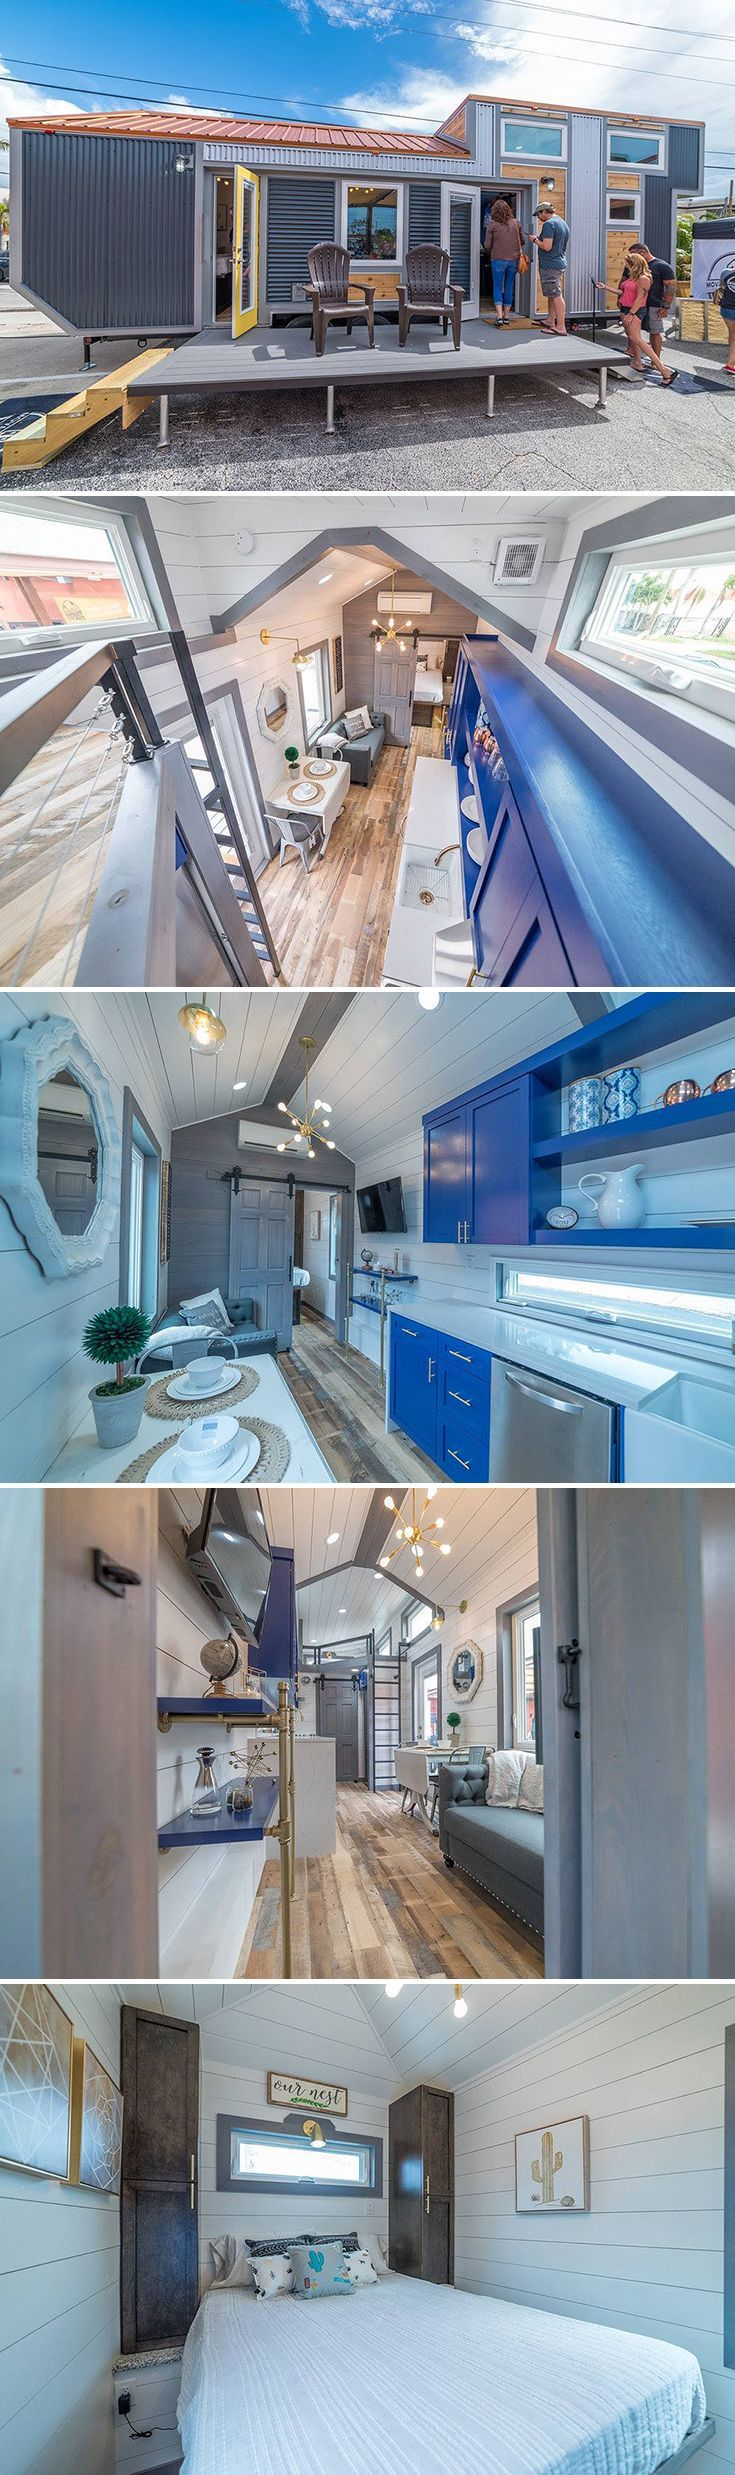 Henderson By Movable Roots Best Tiny House Tiny House